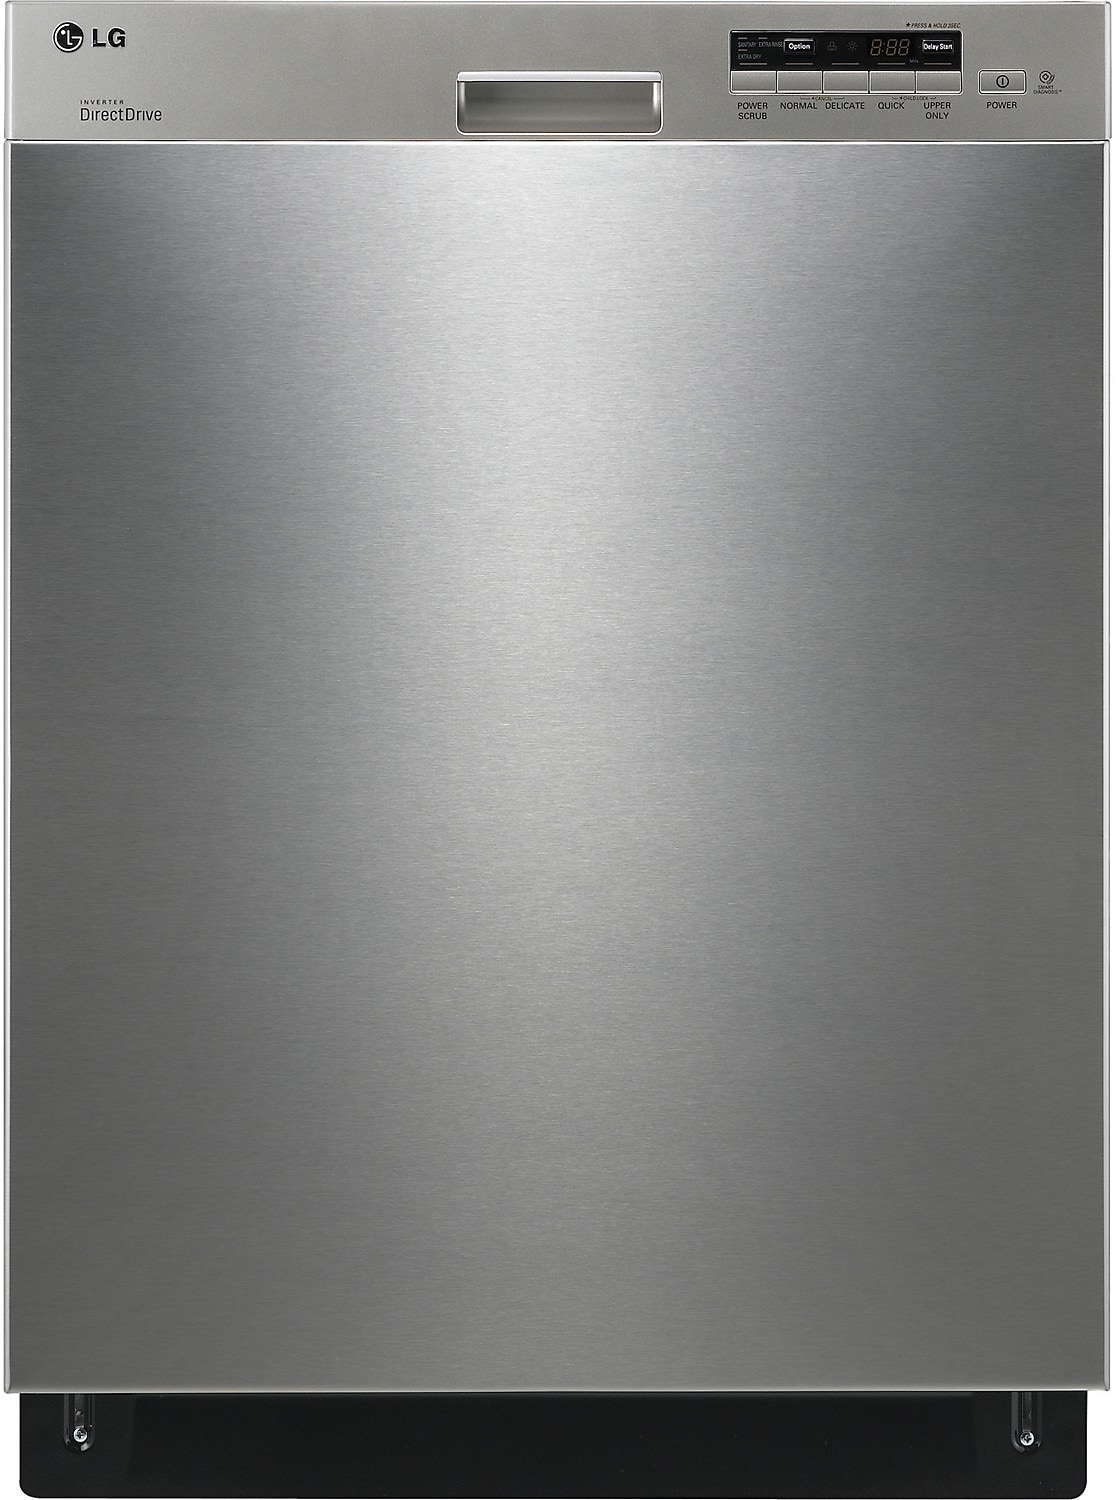 "LG 24"" Semi-Integrated Dishwasher with Flexible EasyRack™ System - Stainless Steel"